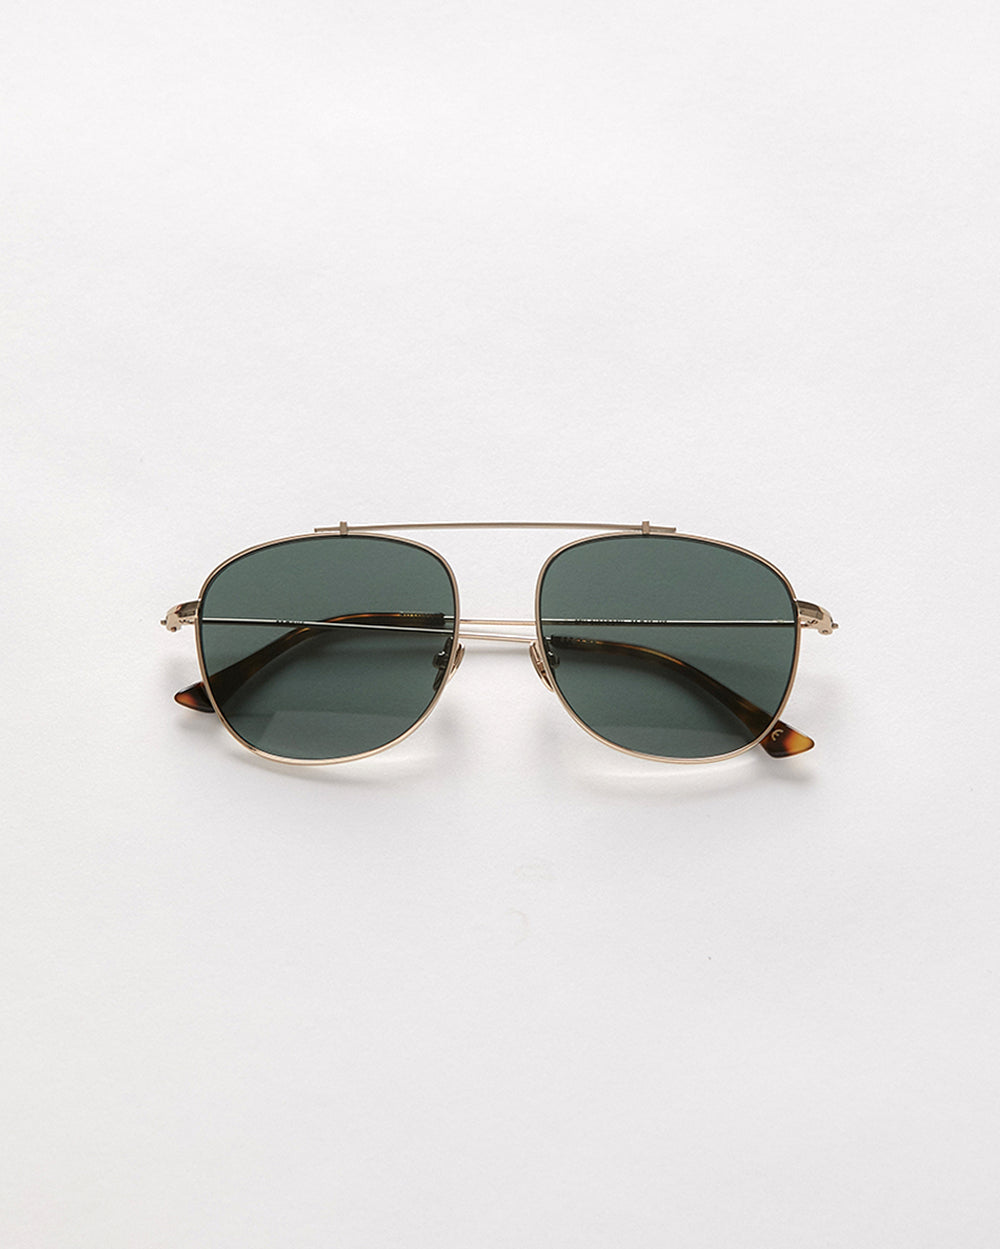 Notomy - Gold Polished / Green